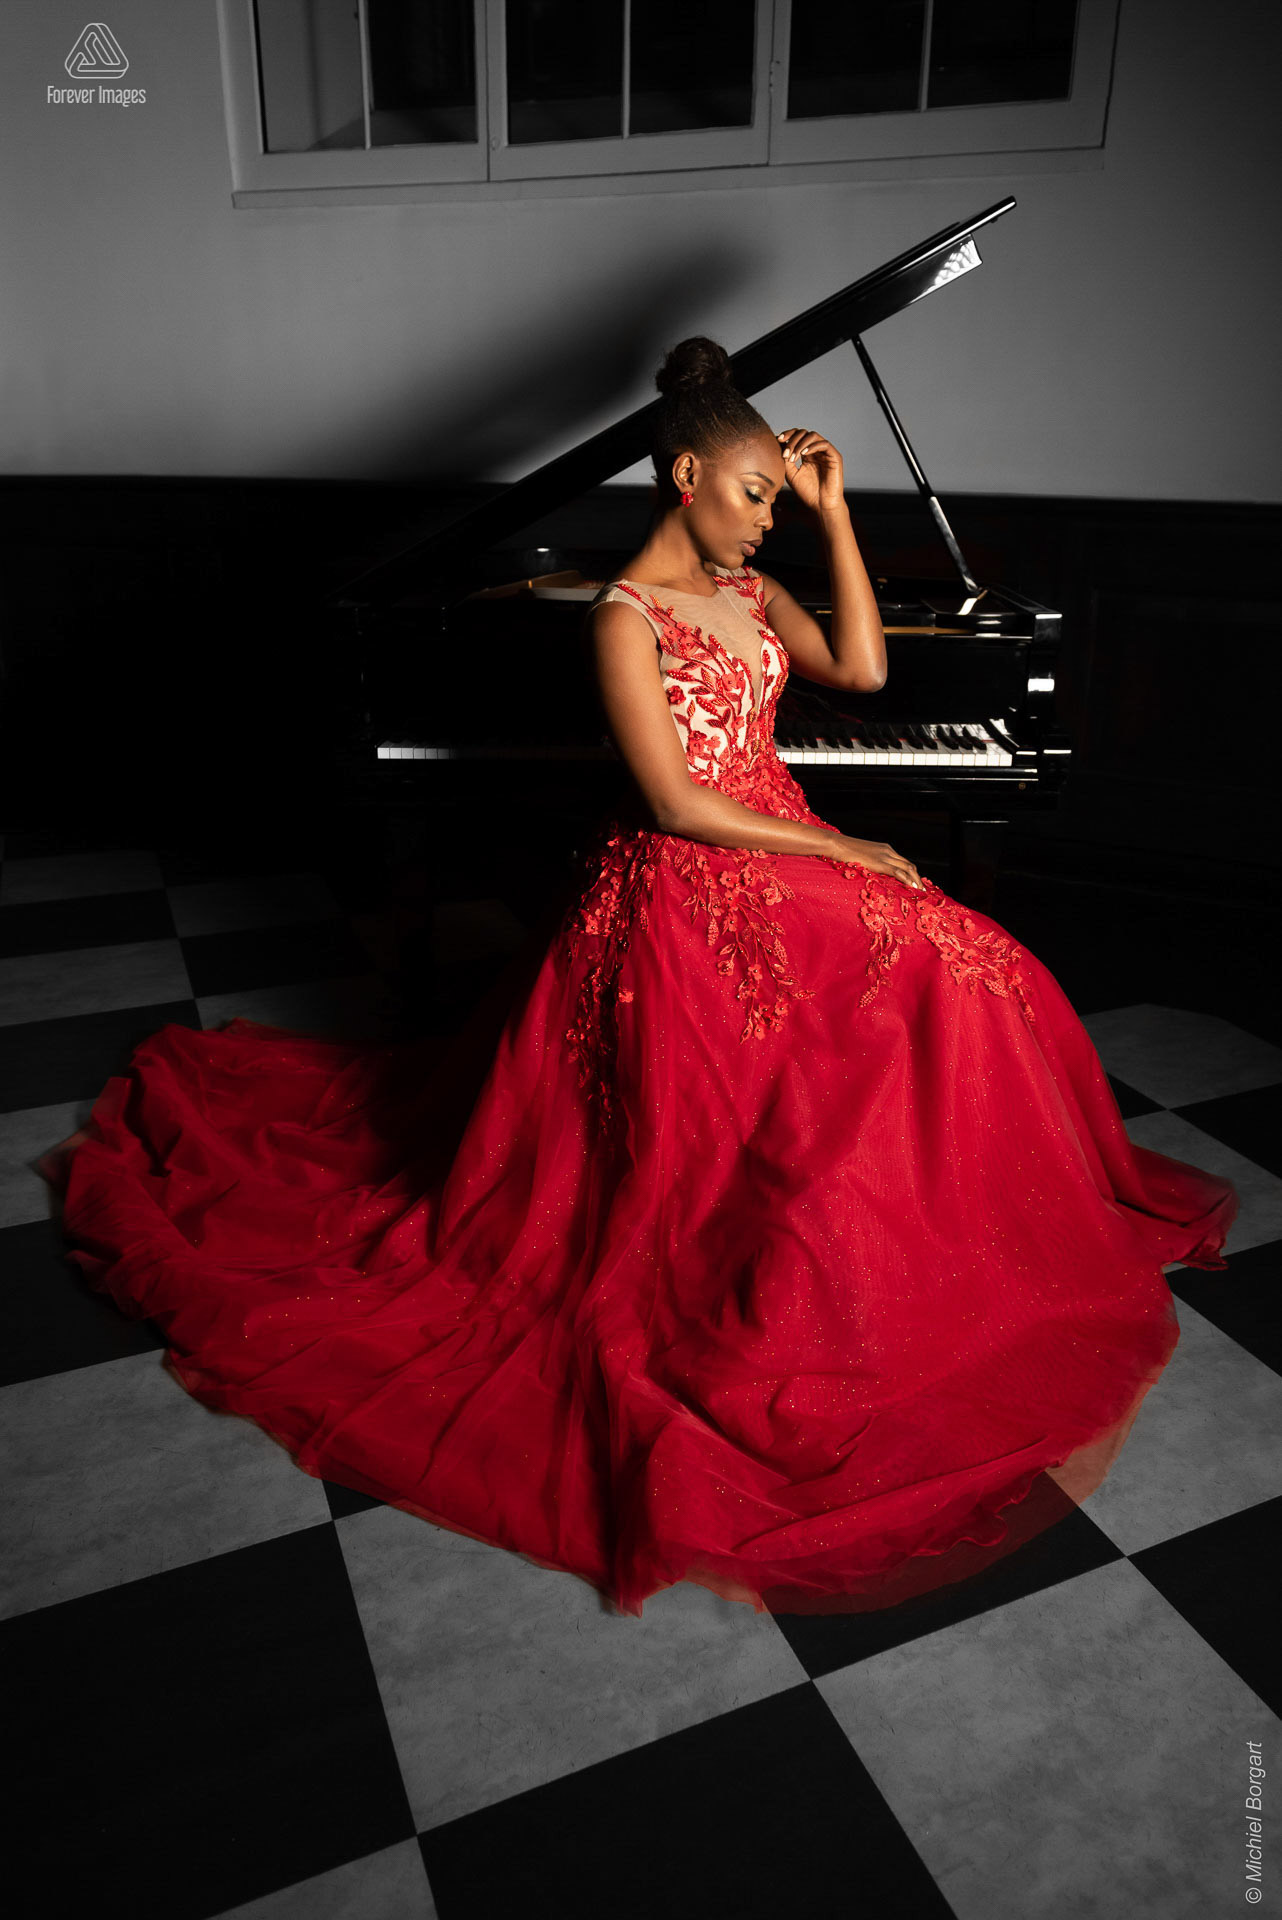 Fashion photo gala dress red at piano | Mariana Pietersz Duc Nguyen Koepelkerk Amsterdam | Fashion Photographer Michiel Borgart - Forever Images.